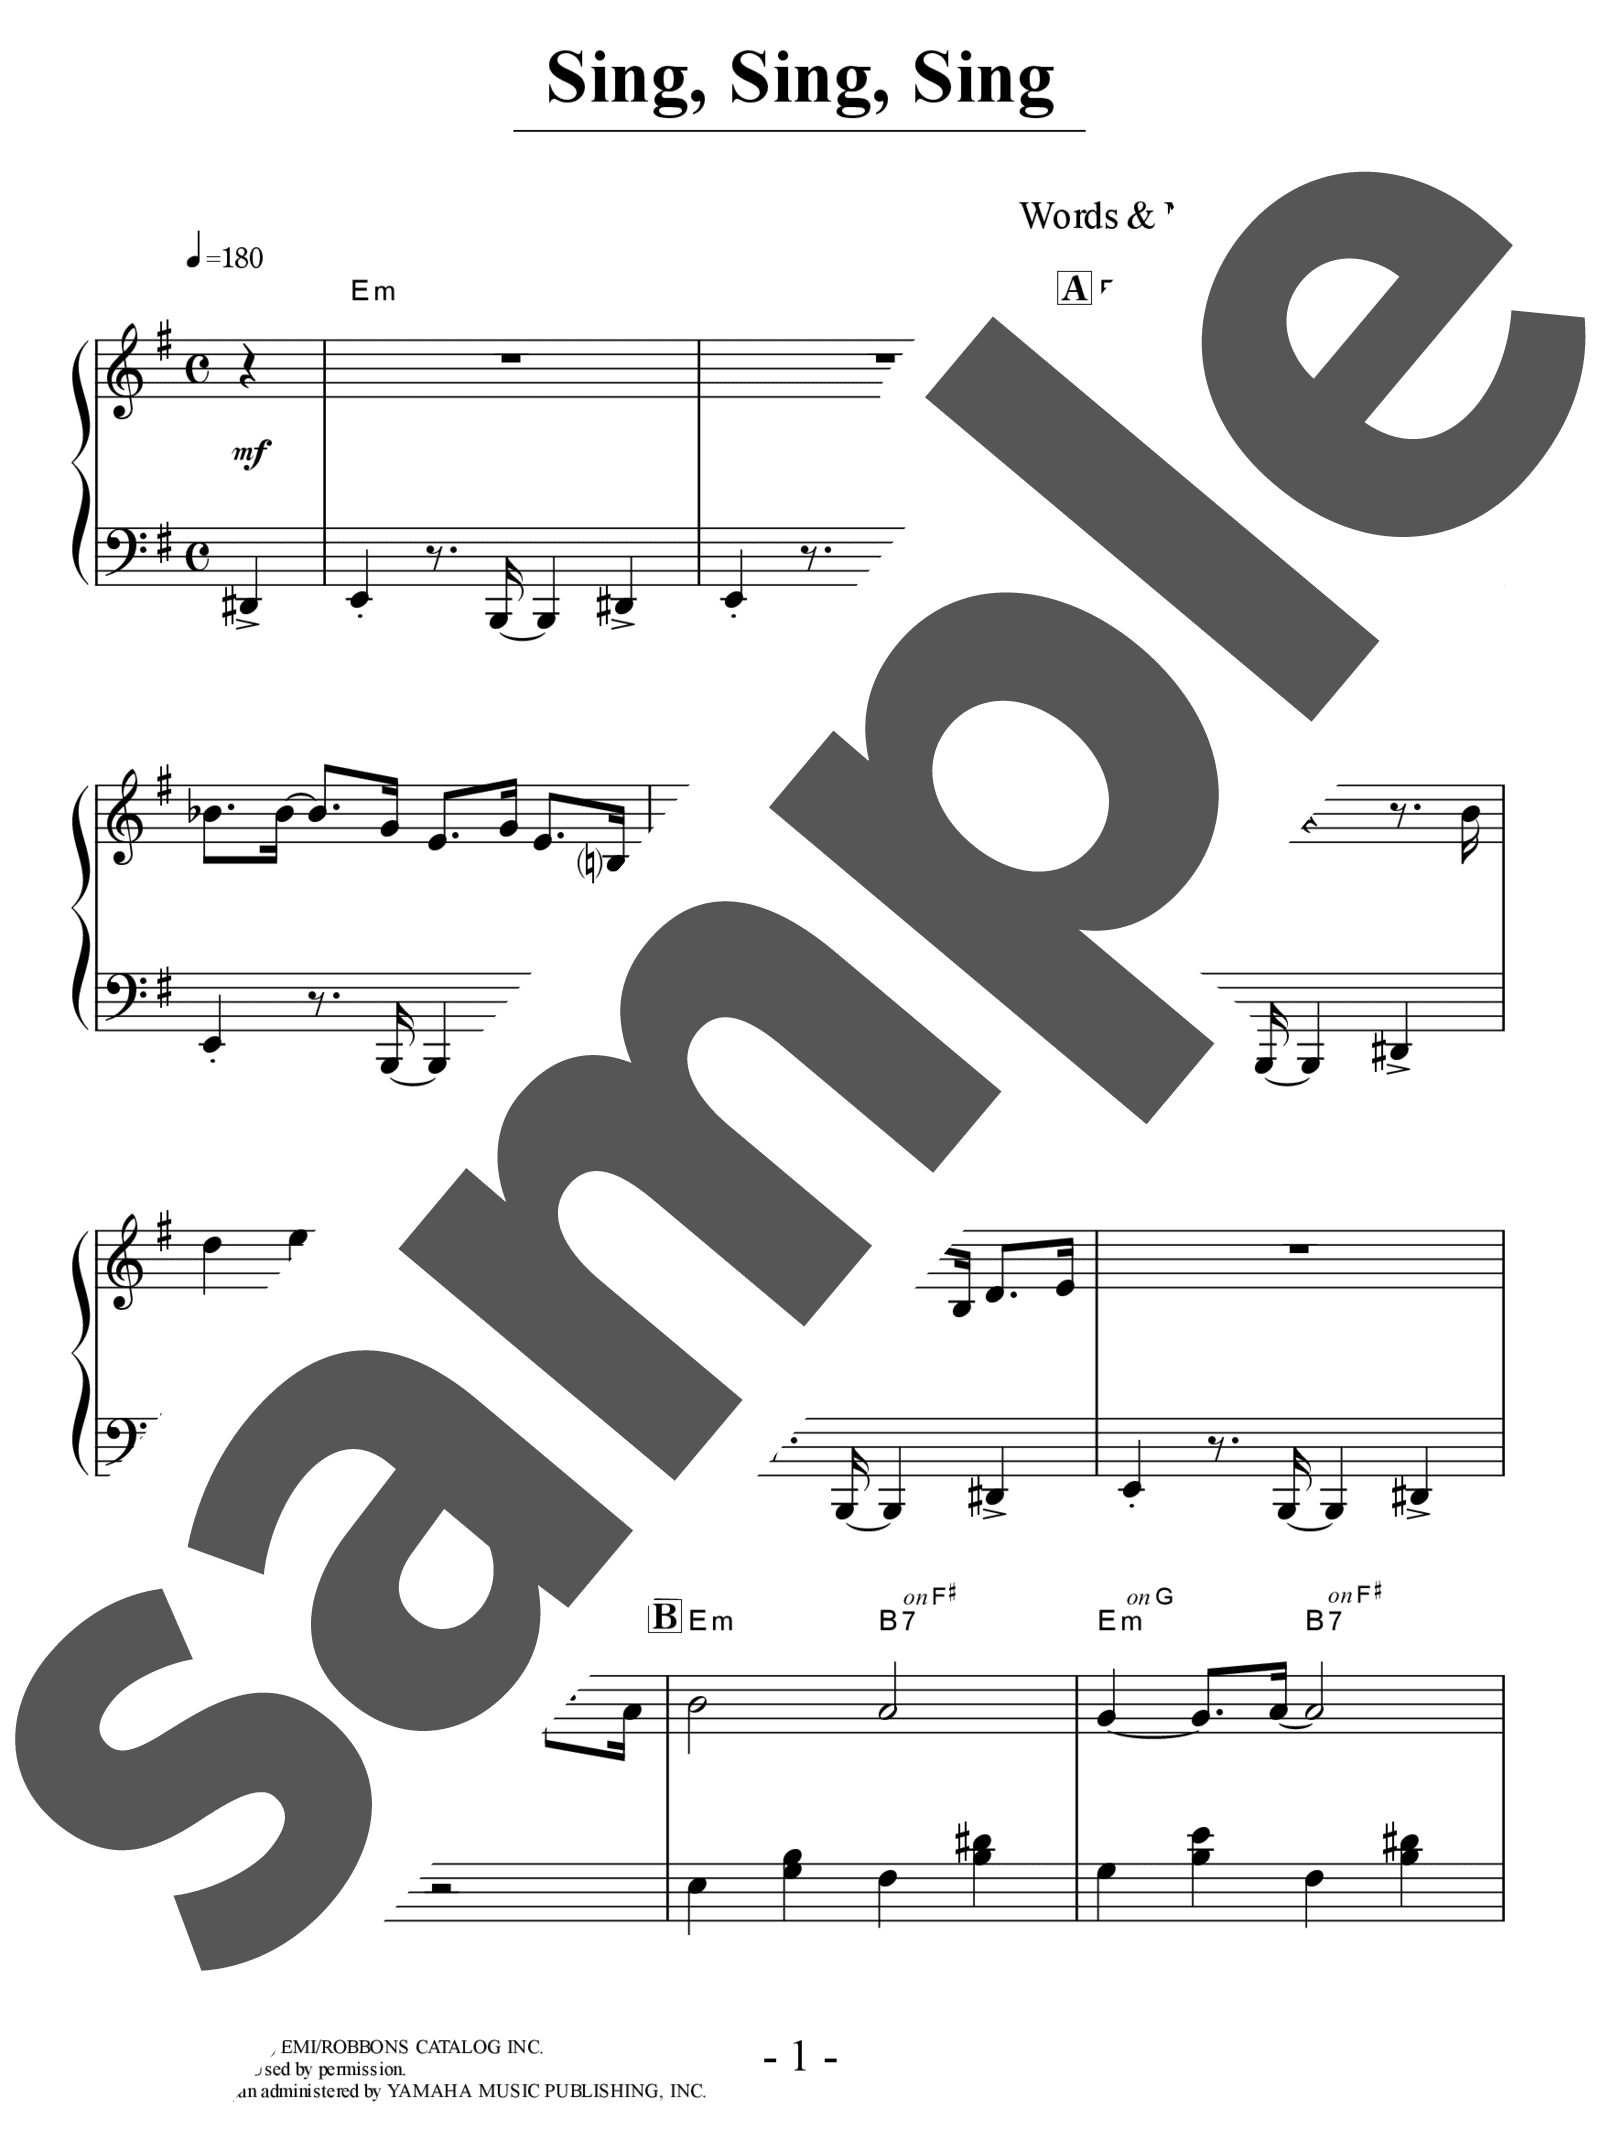 「Sing, Sing, Sing (With a Swing)」のサンプル楽譜